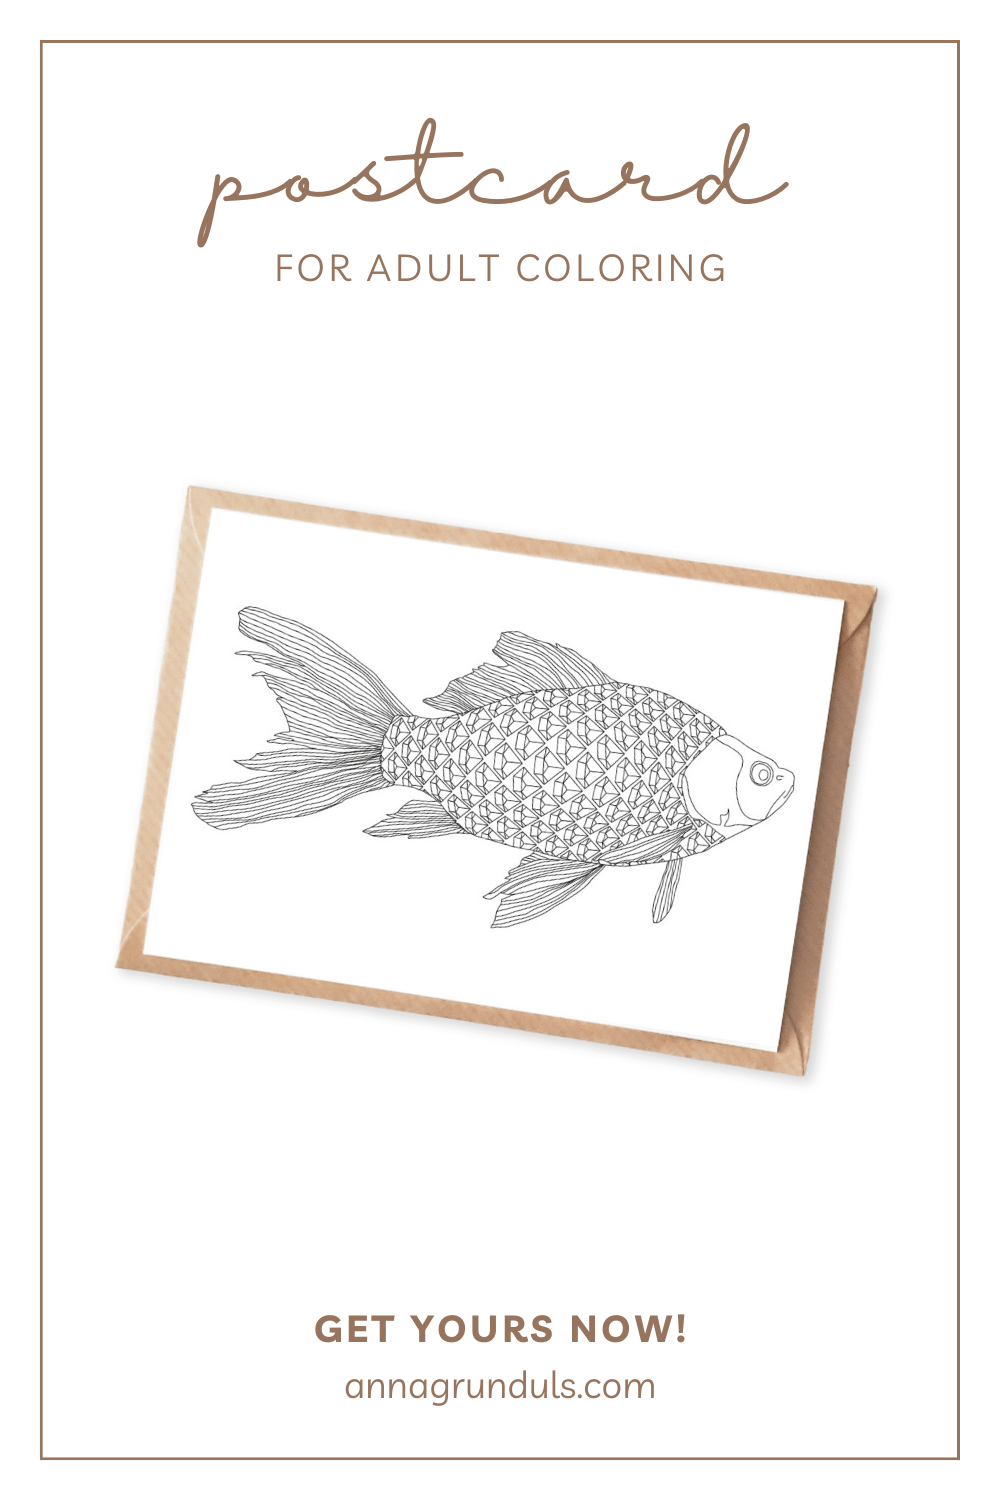 fish postcard for adult coloring pinterest pin